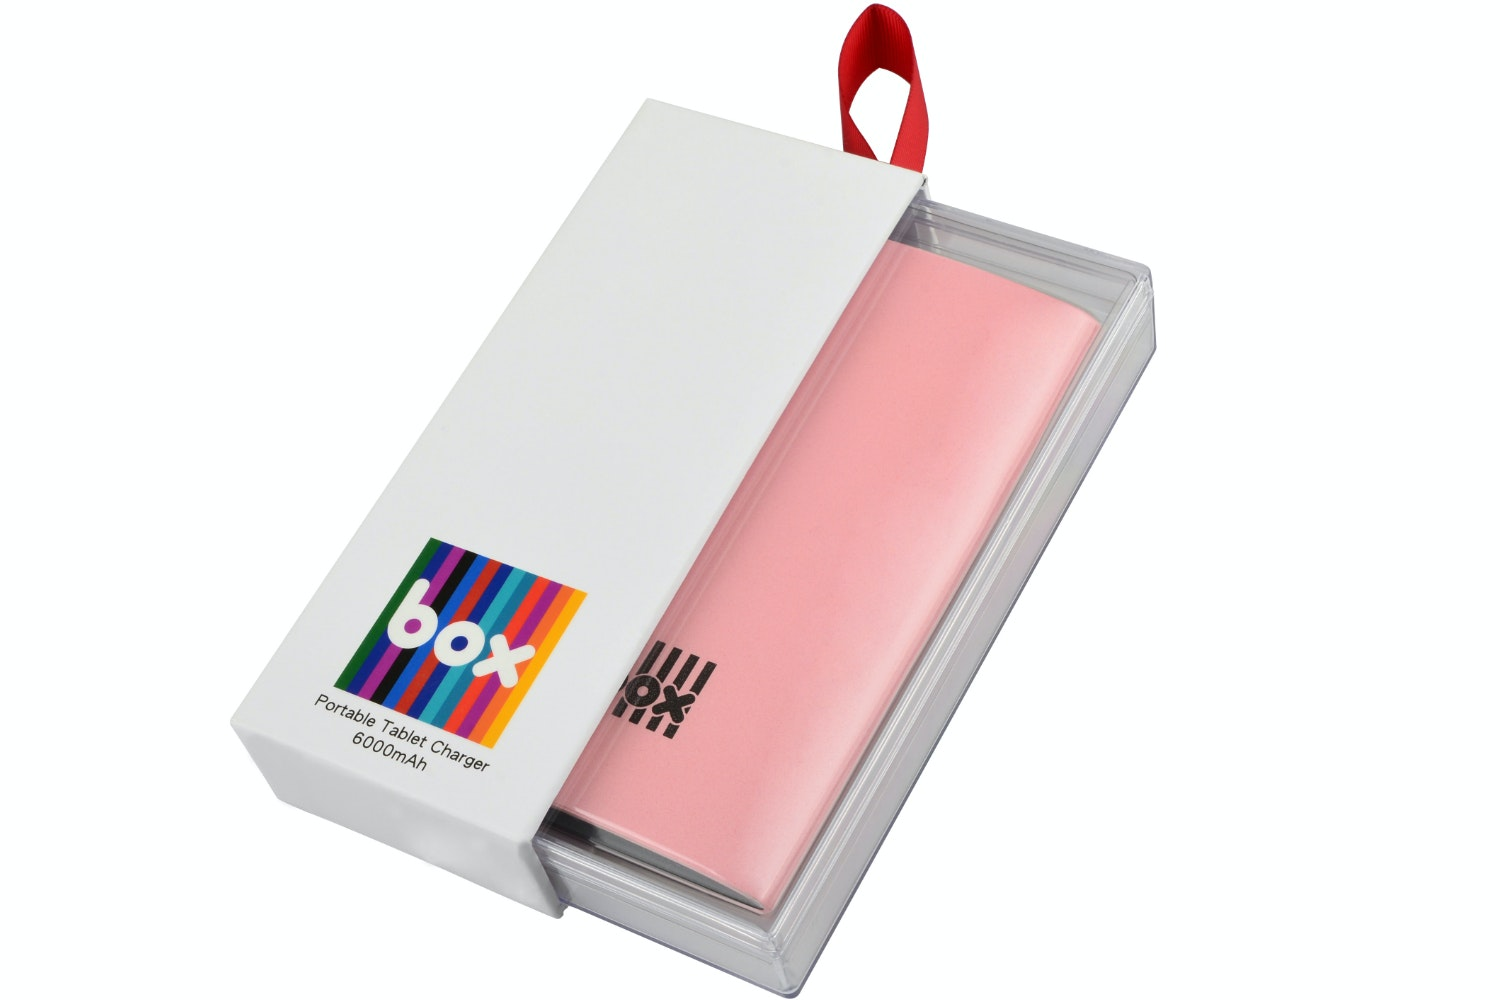 Box Tablet Charger | Pink